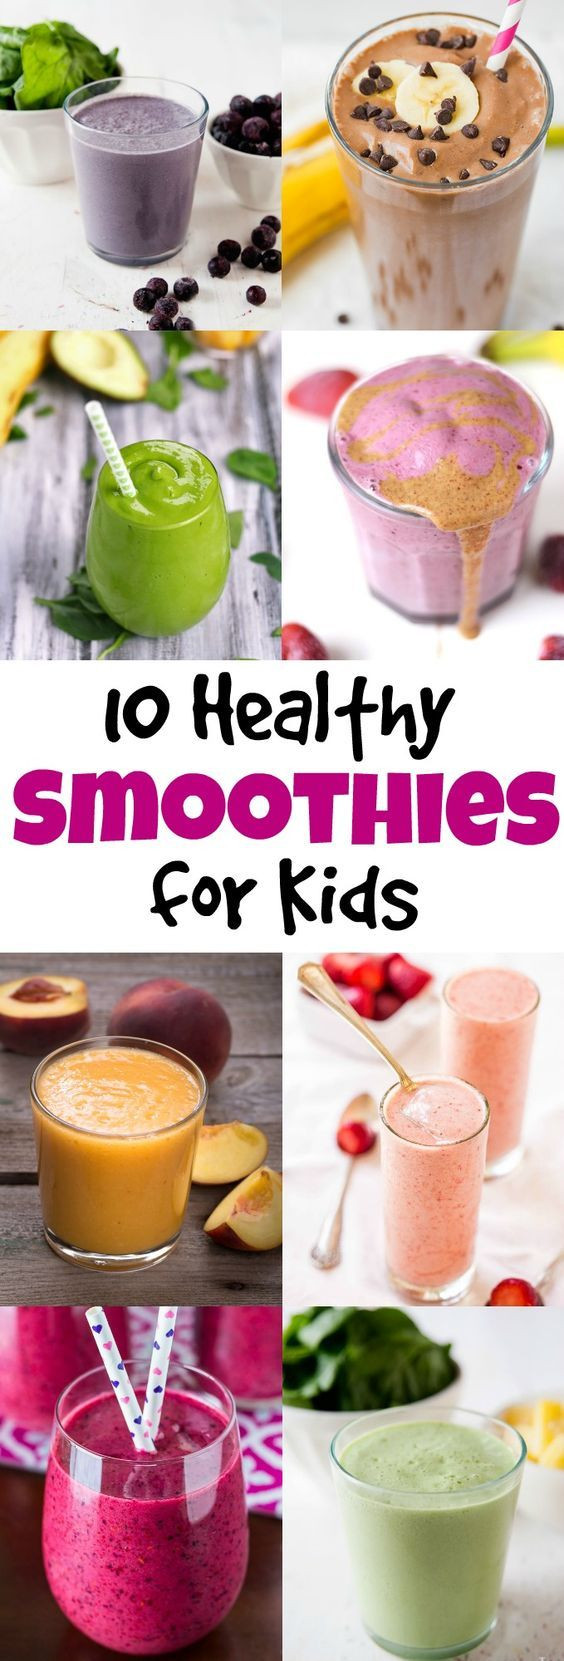 Good Healthy Smoothies For Breakfast  10 Healthy Smoothies for Kids